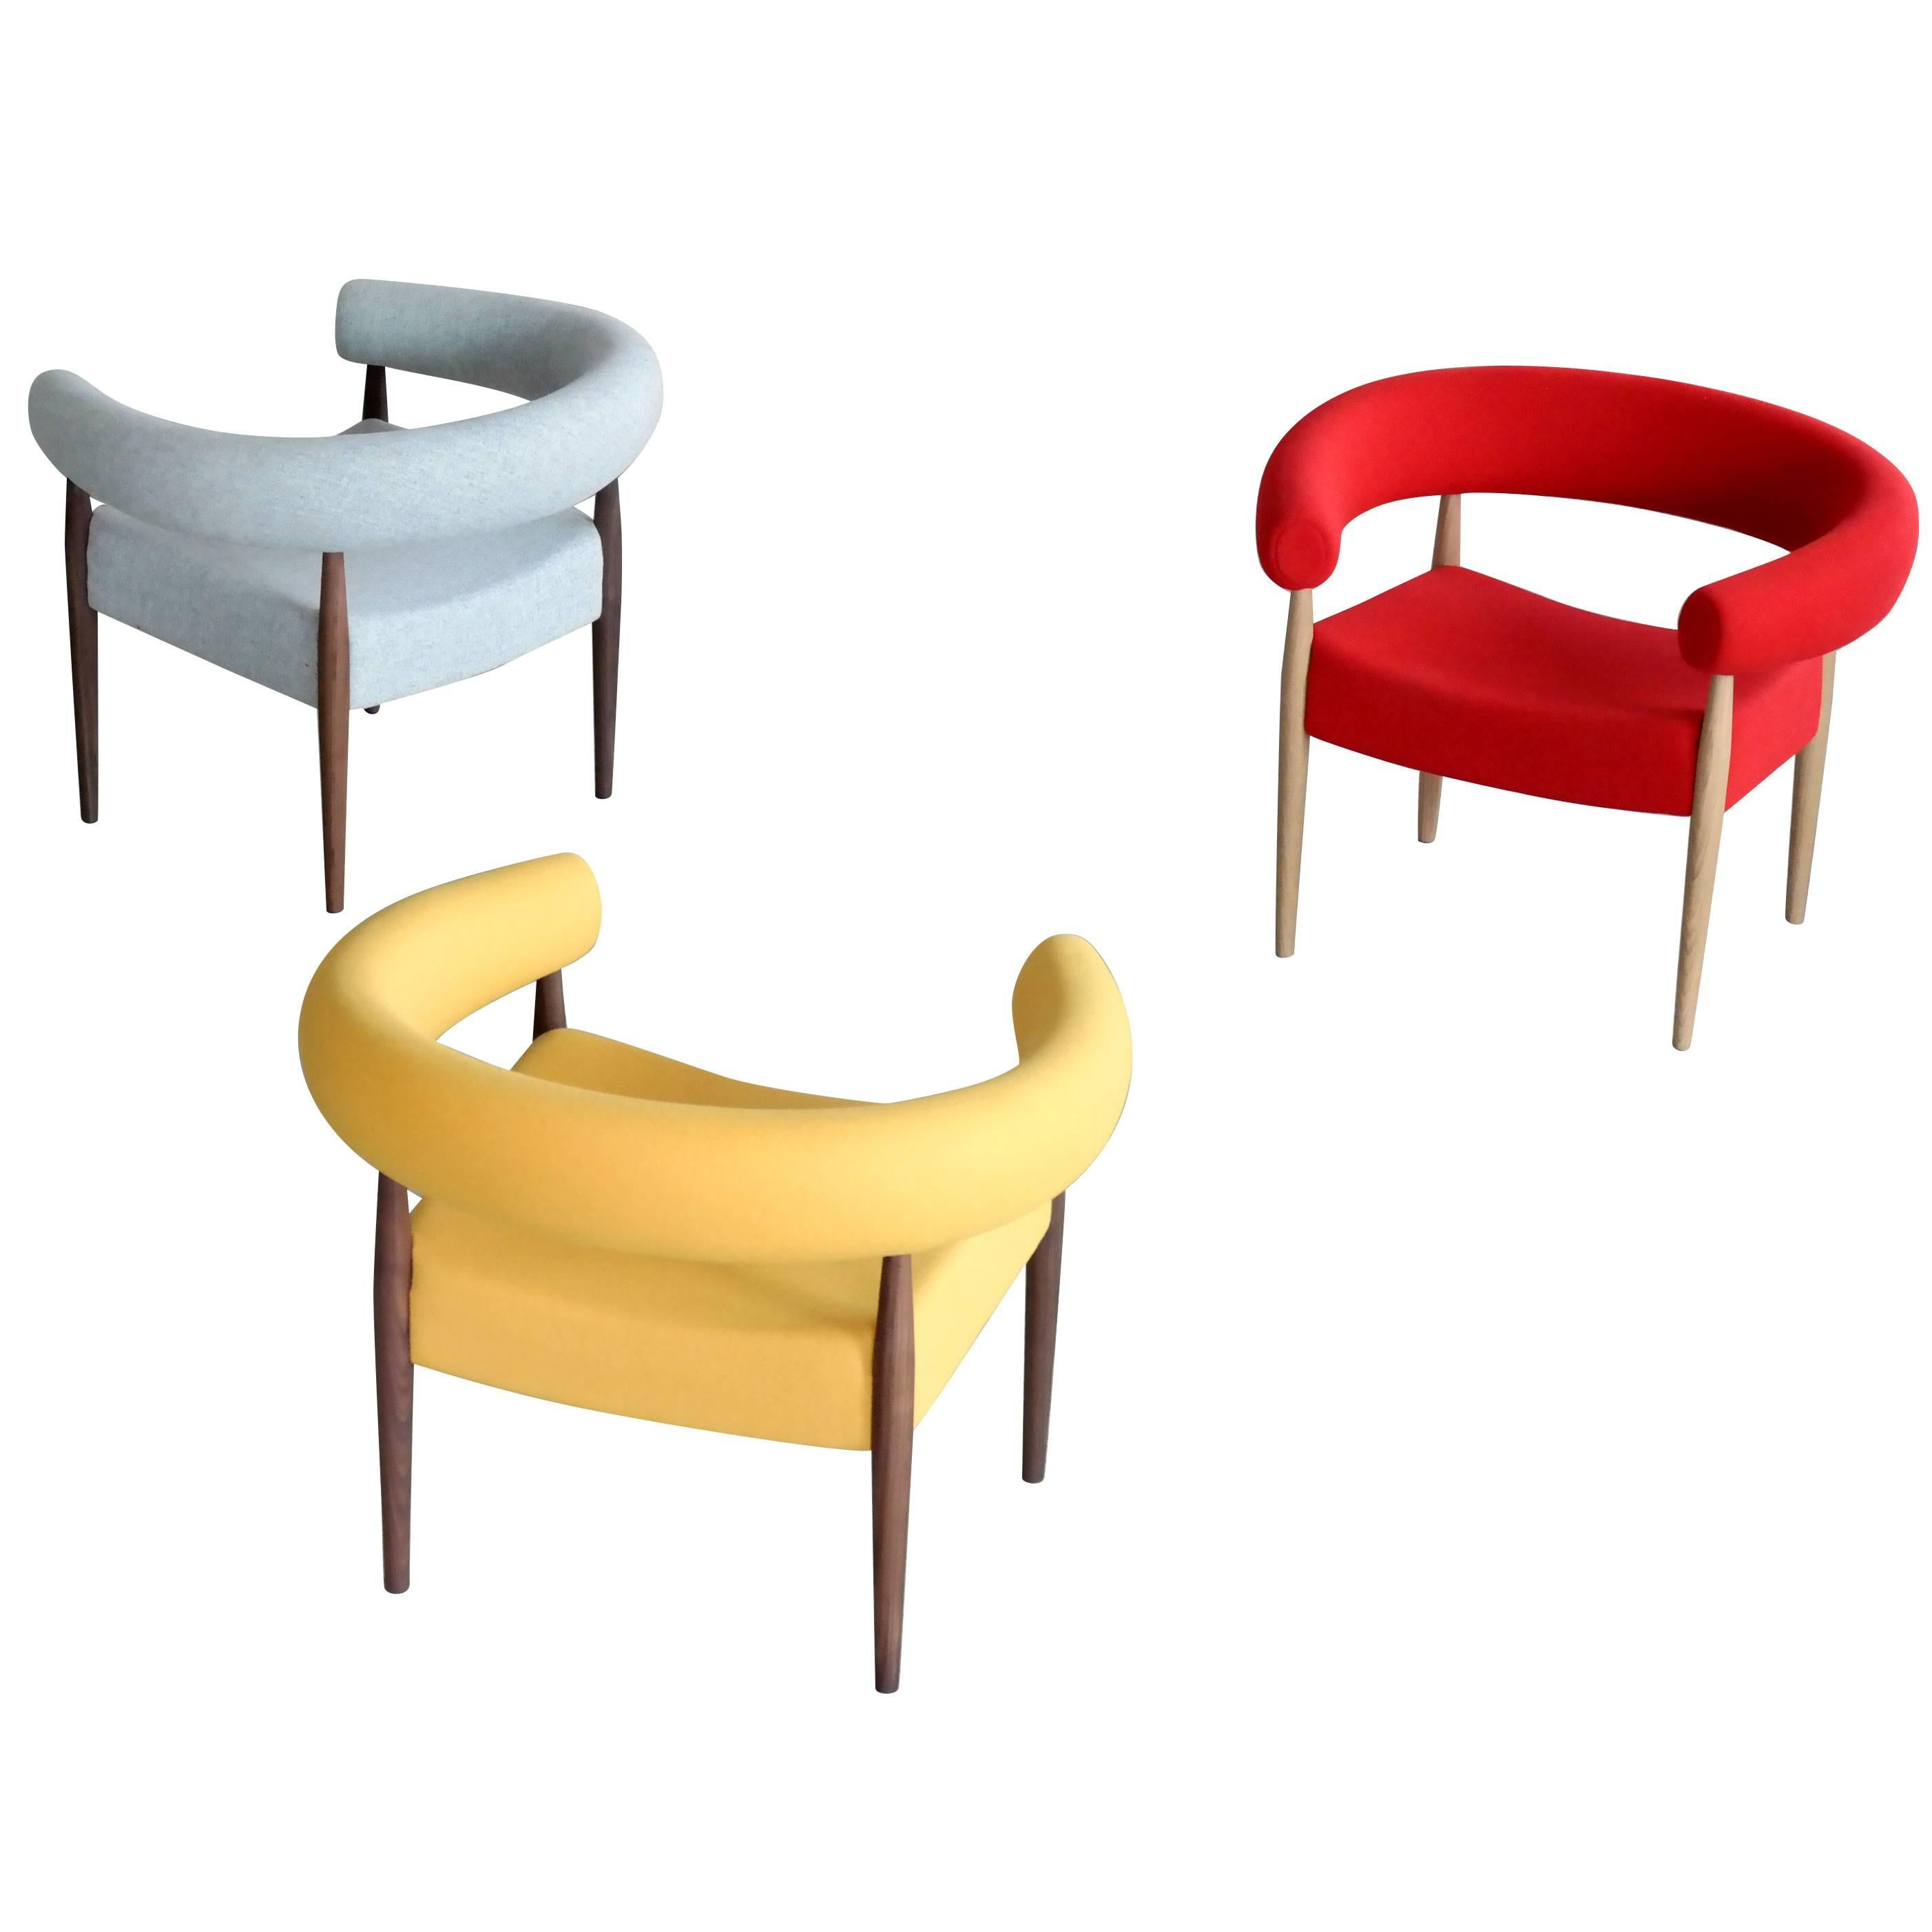 Beau Nanna Ditzel Ring Chairs For GETAMA For Sale